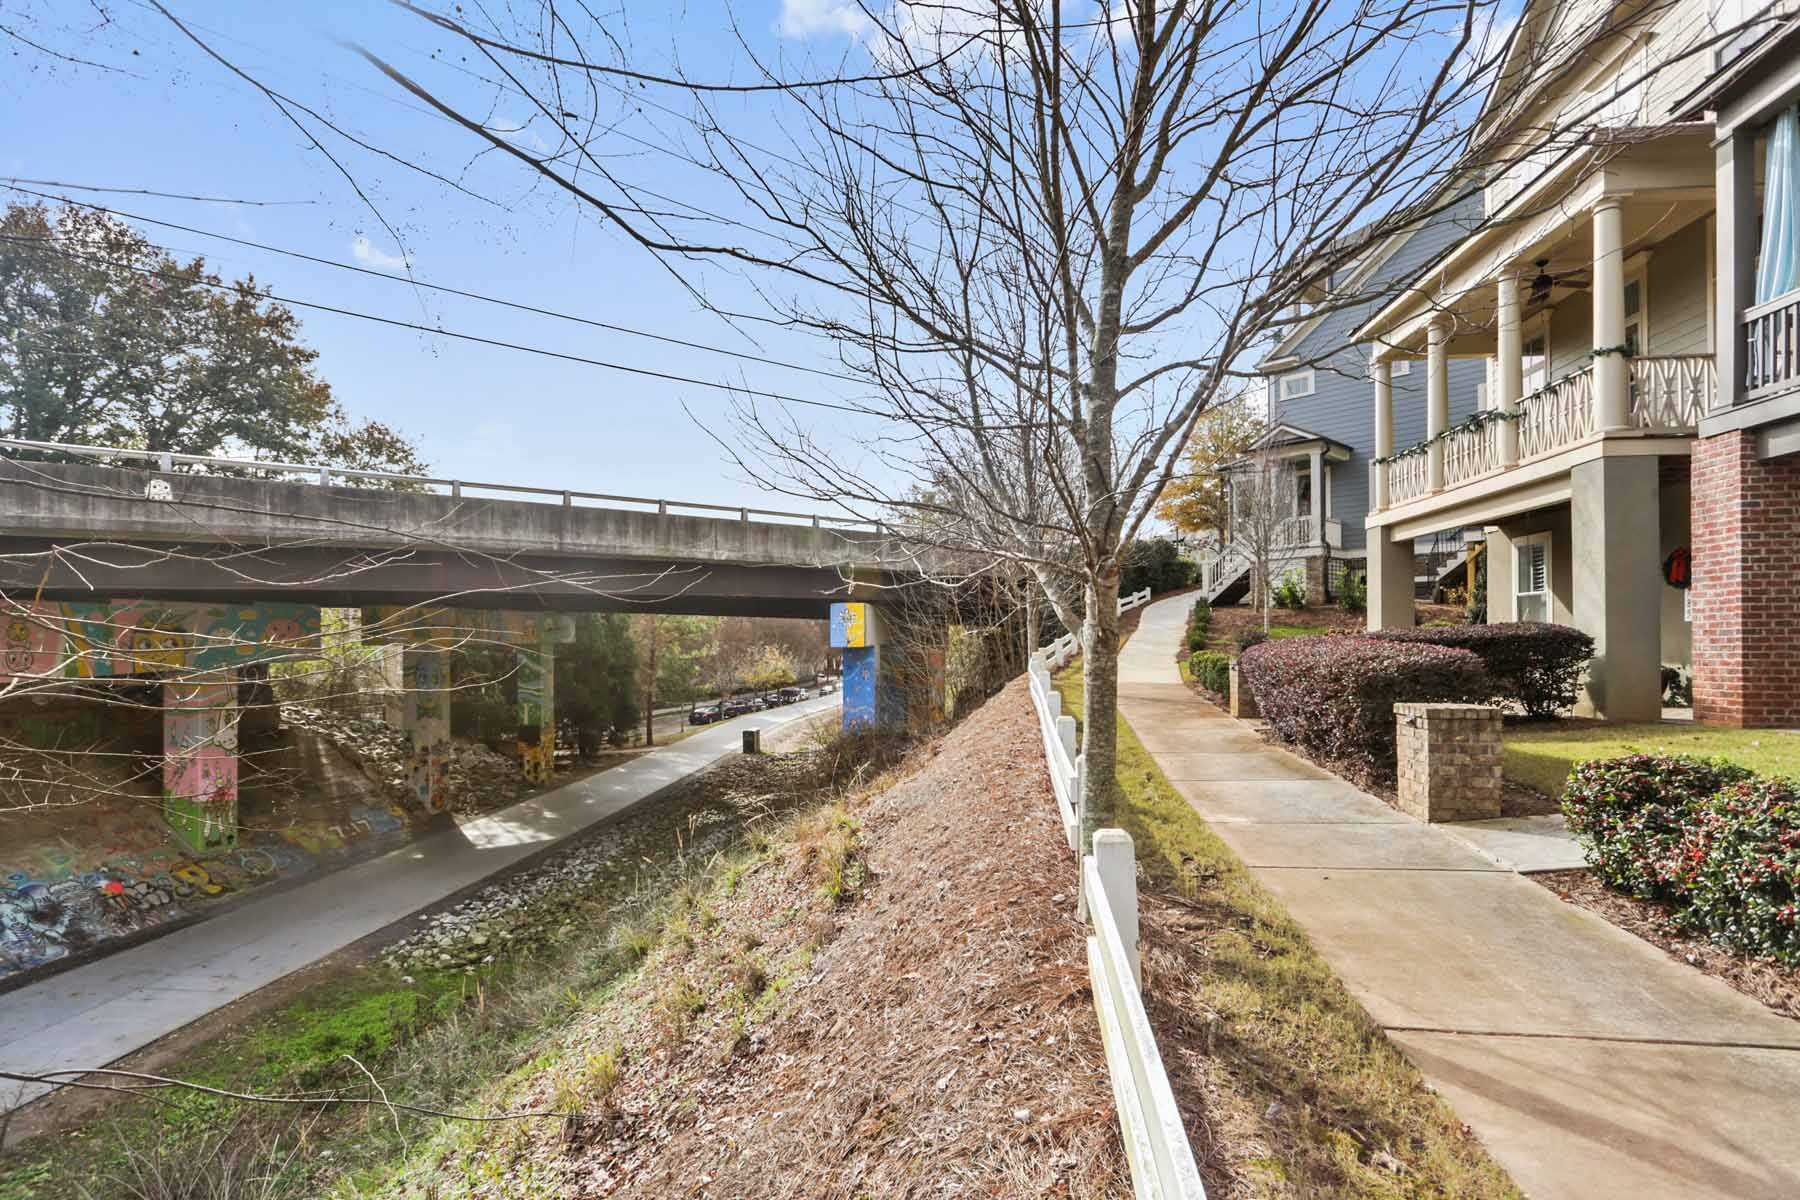 Additional photo for property listing at Stunning Inman Park Townhome Overlooking The Beltline 791 Corduroy Lane Atlanta, Georgia 30312 United States